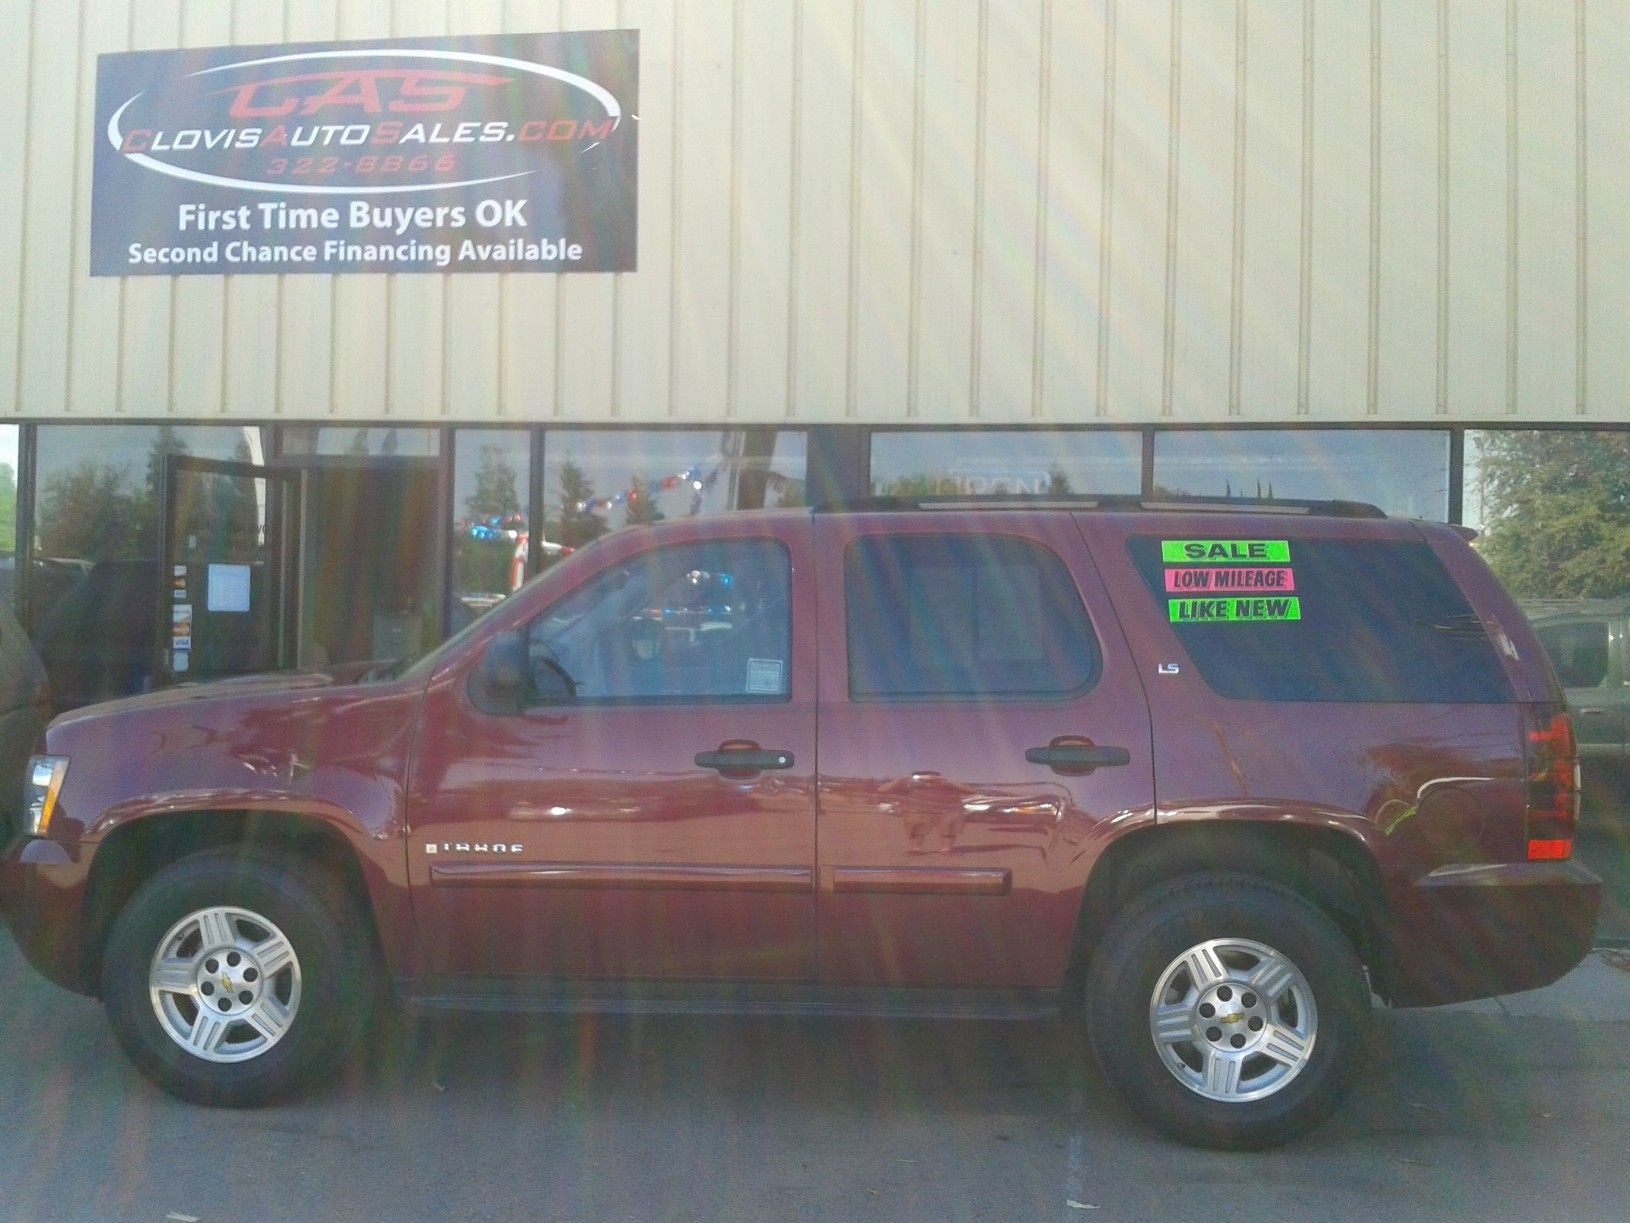 21 995 This 2007 Chevy Tahoe That Drives Like A Beauty With Only